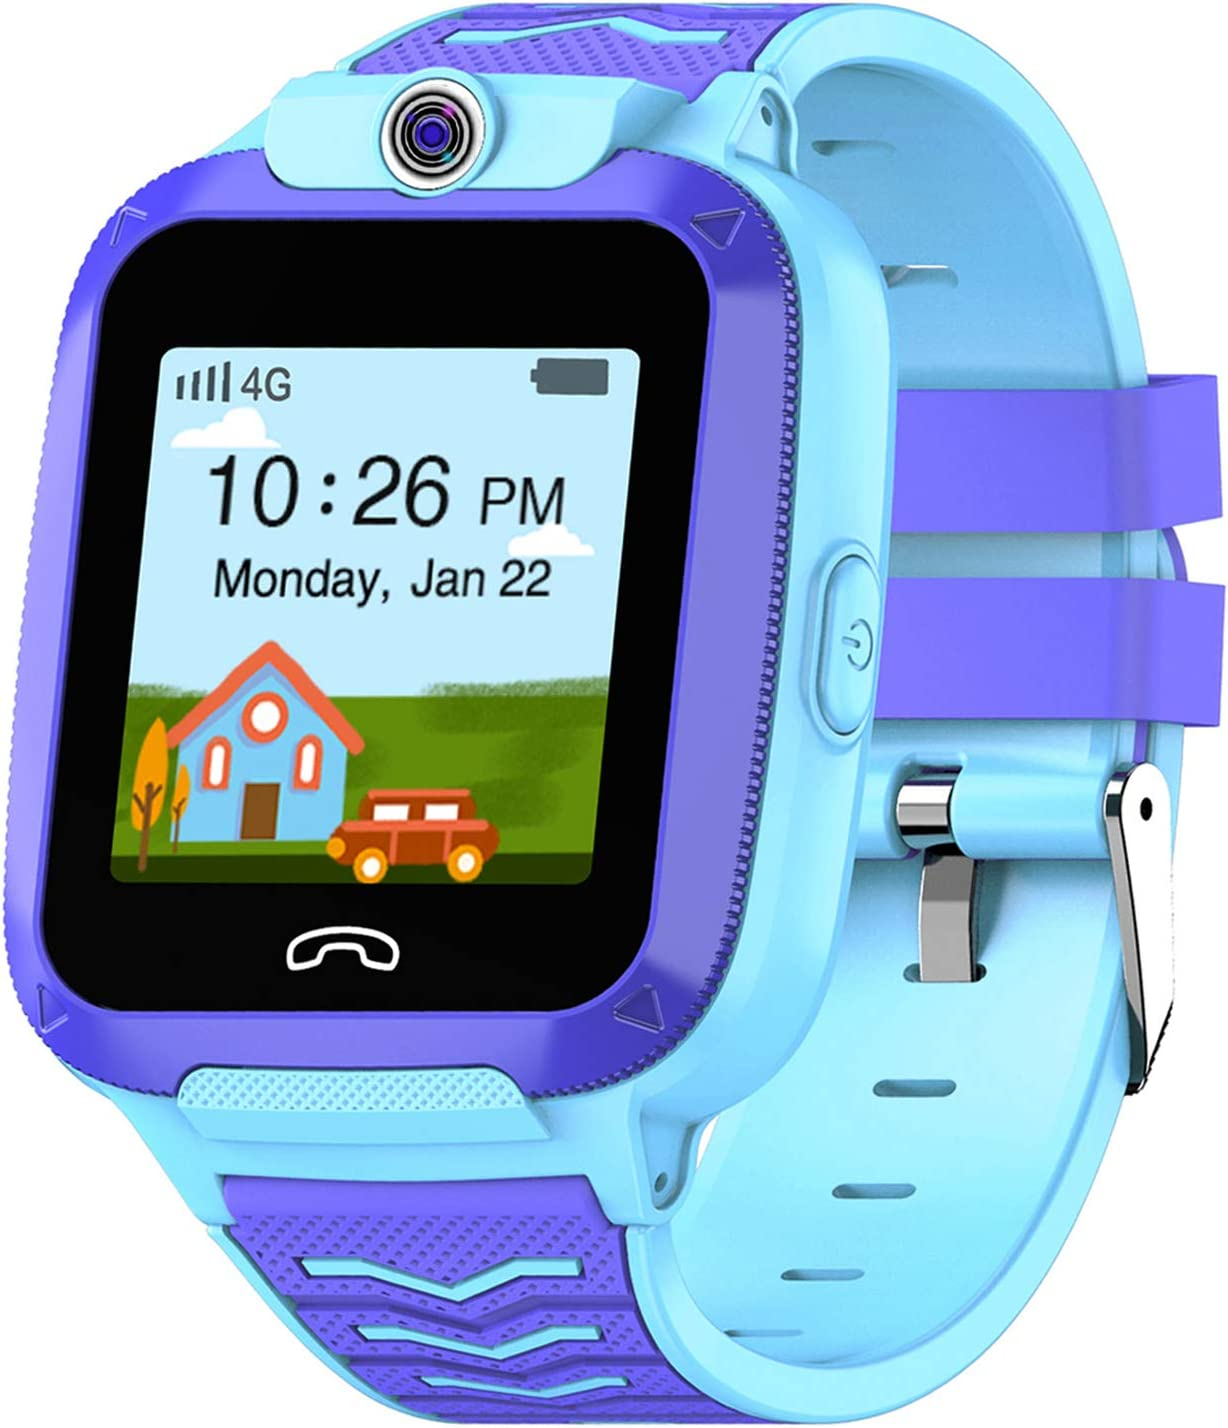 UOTO 4G Kids Smartwatch Phone, WiFi LBS GPS Tracker Watch Waterproof for Boys Girls with Pedometer/Remote monitoring/FaceTalk/2-way Call/SOS, Kids ...